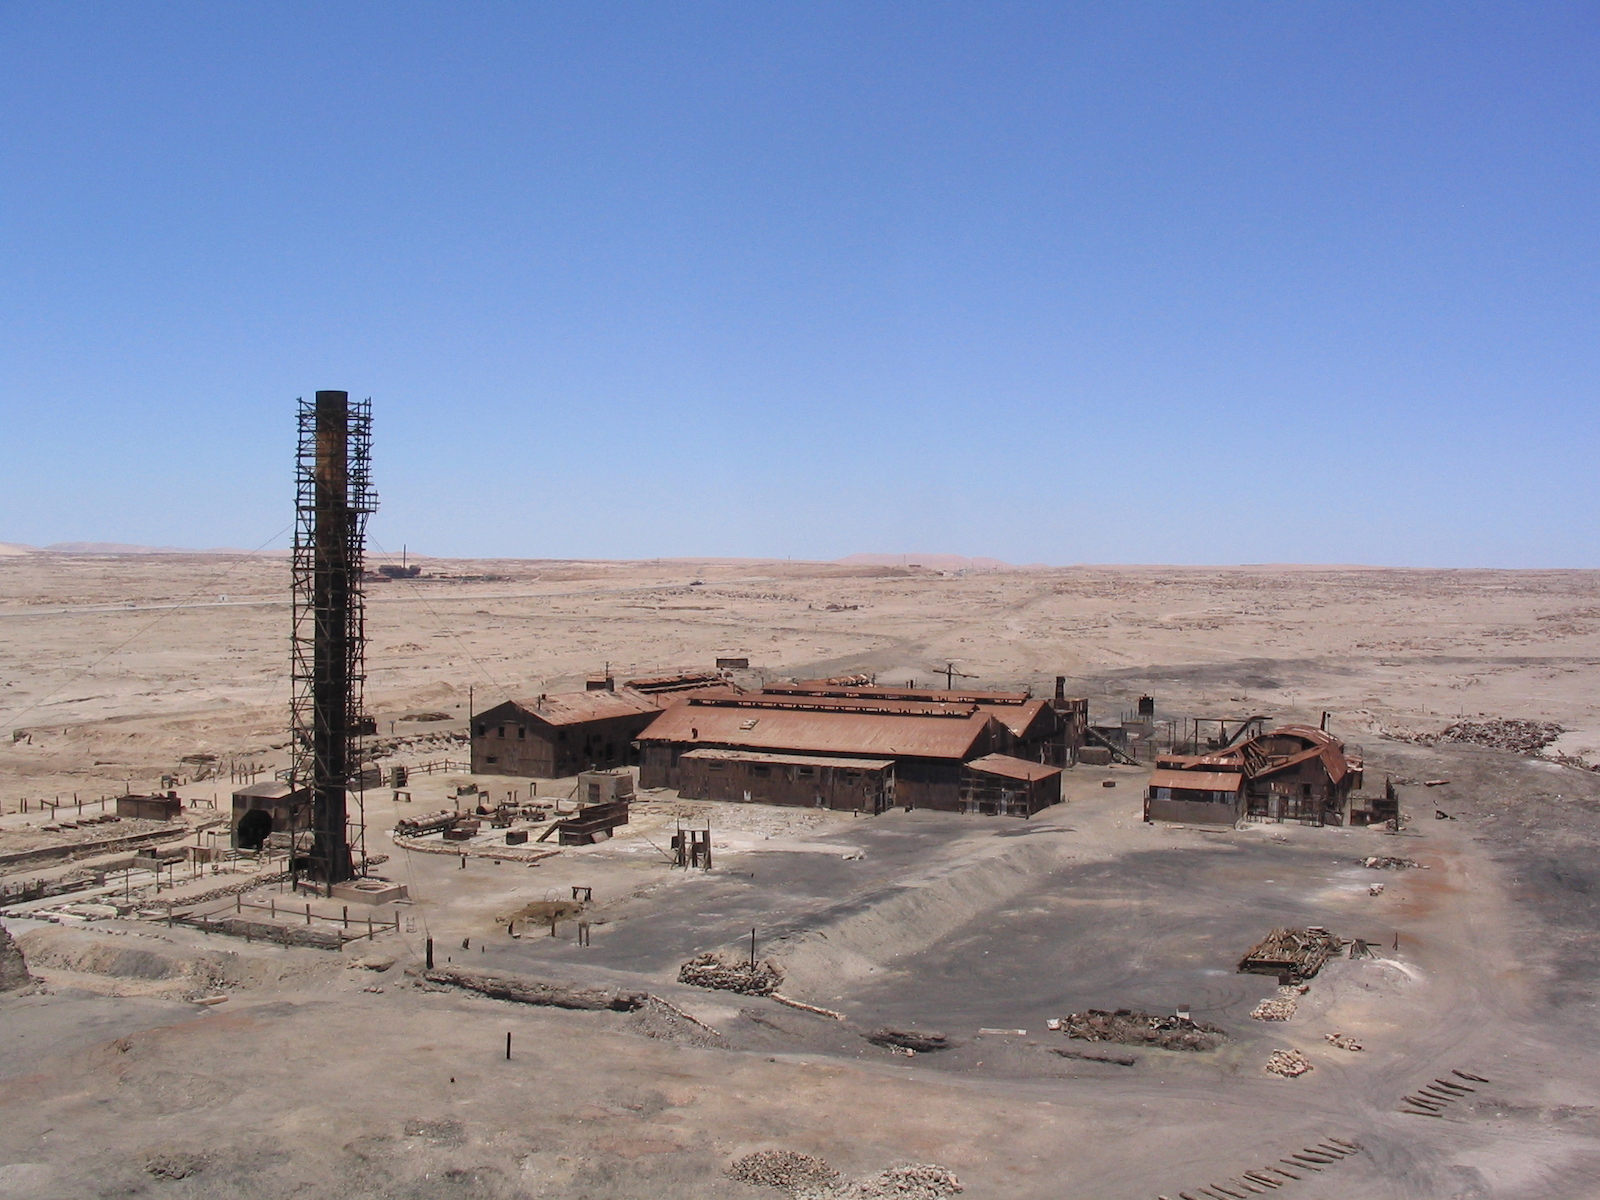 Humberstone in Chile